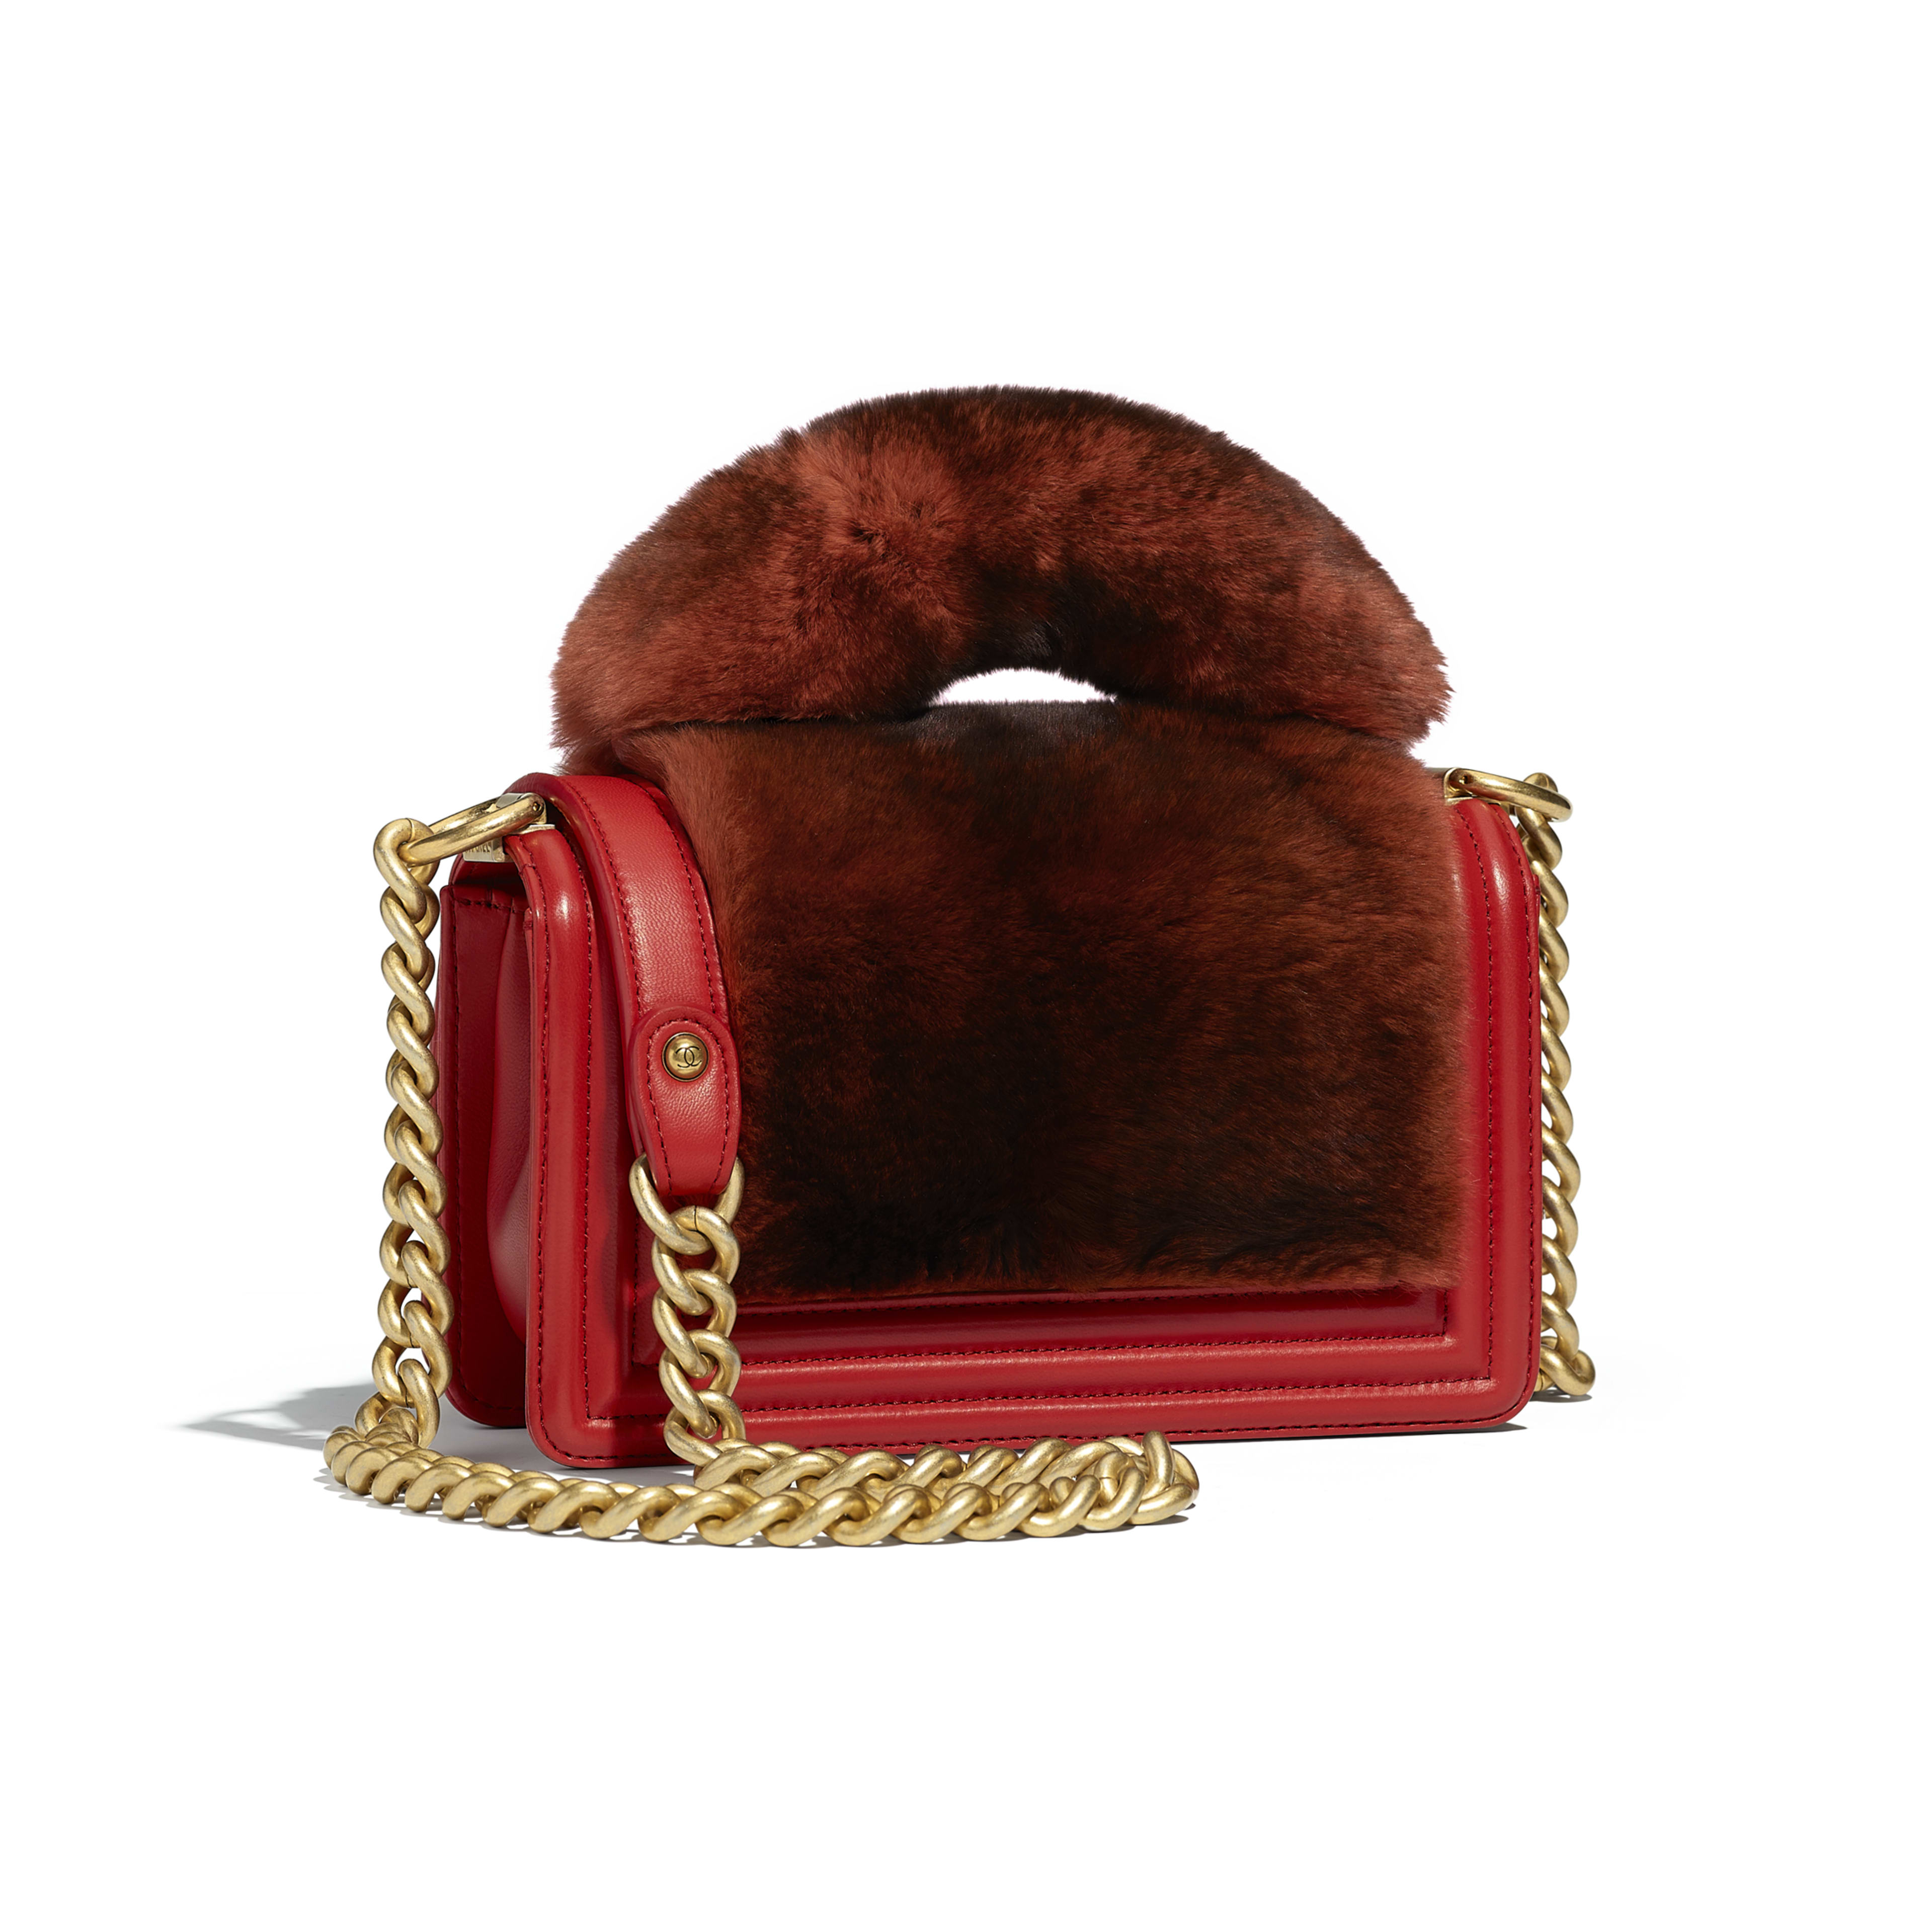 BOY CHANEL Flap Bag with Handle Orylag, Calfskin & Gold-Tone Metal Red -                                       view 2 - see full sized version